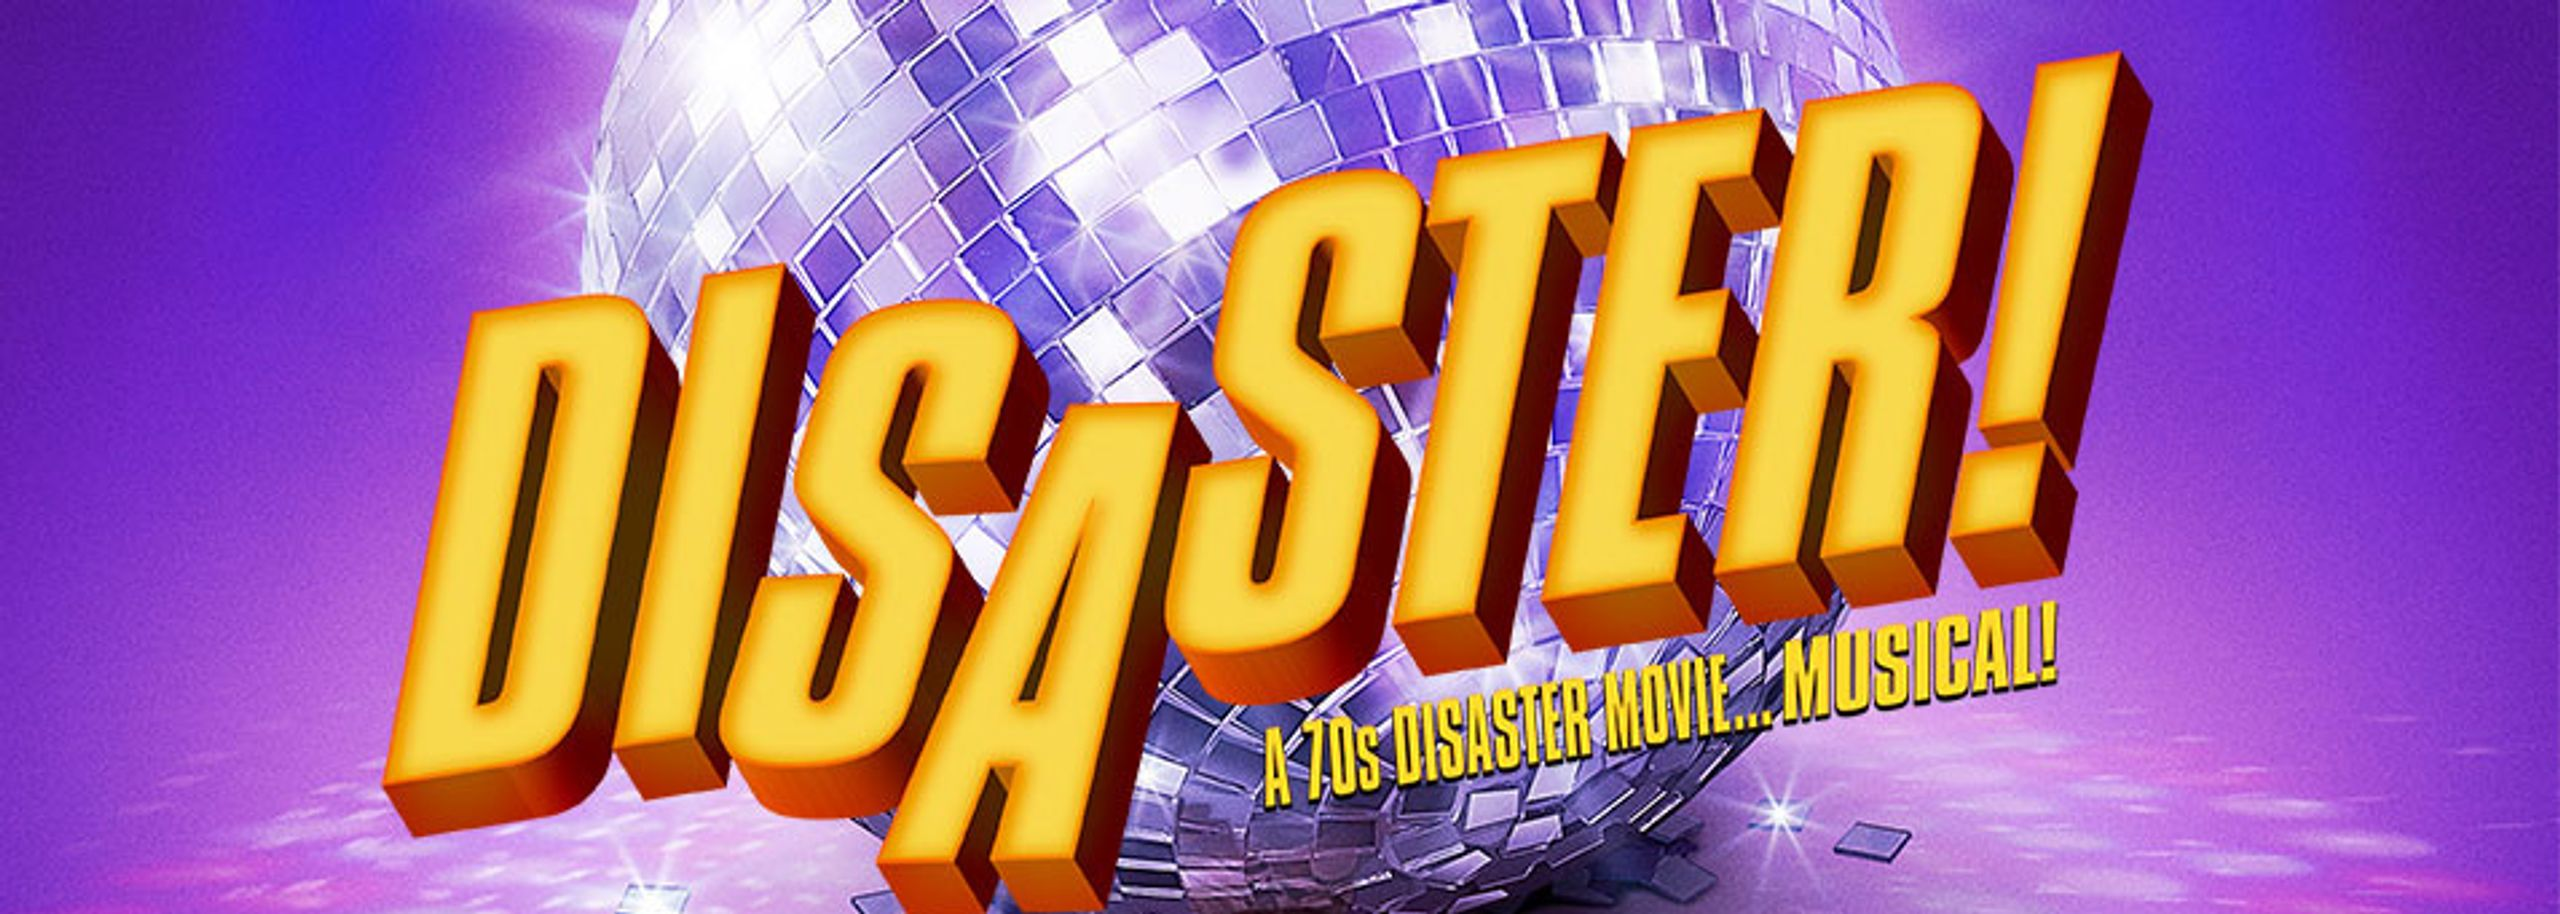 DisasterMusical